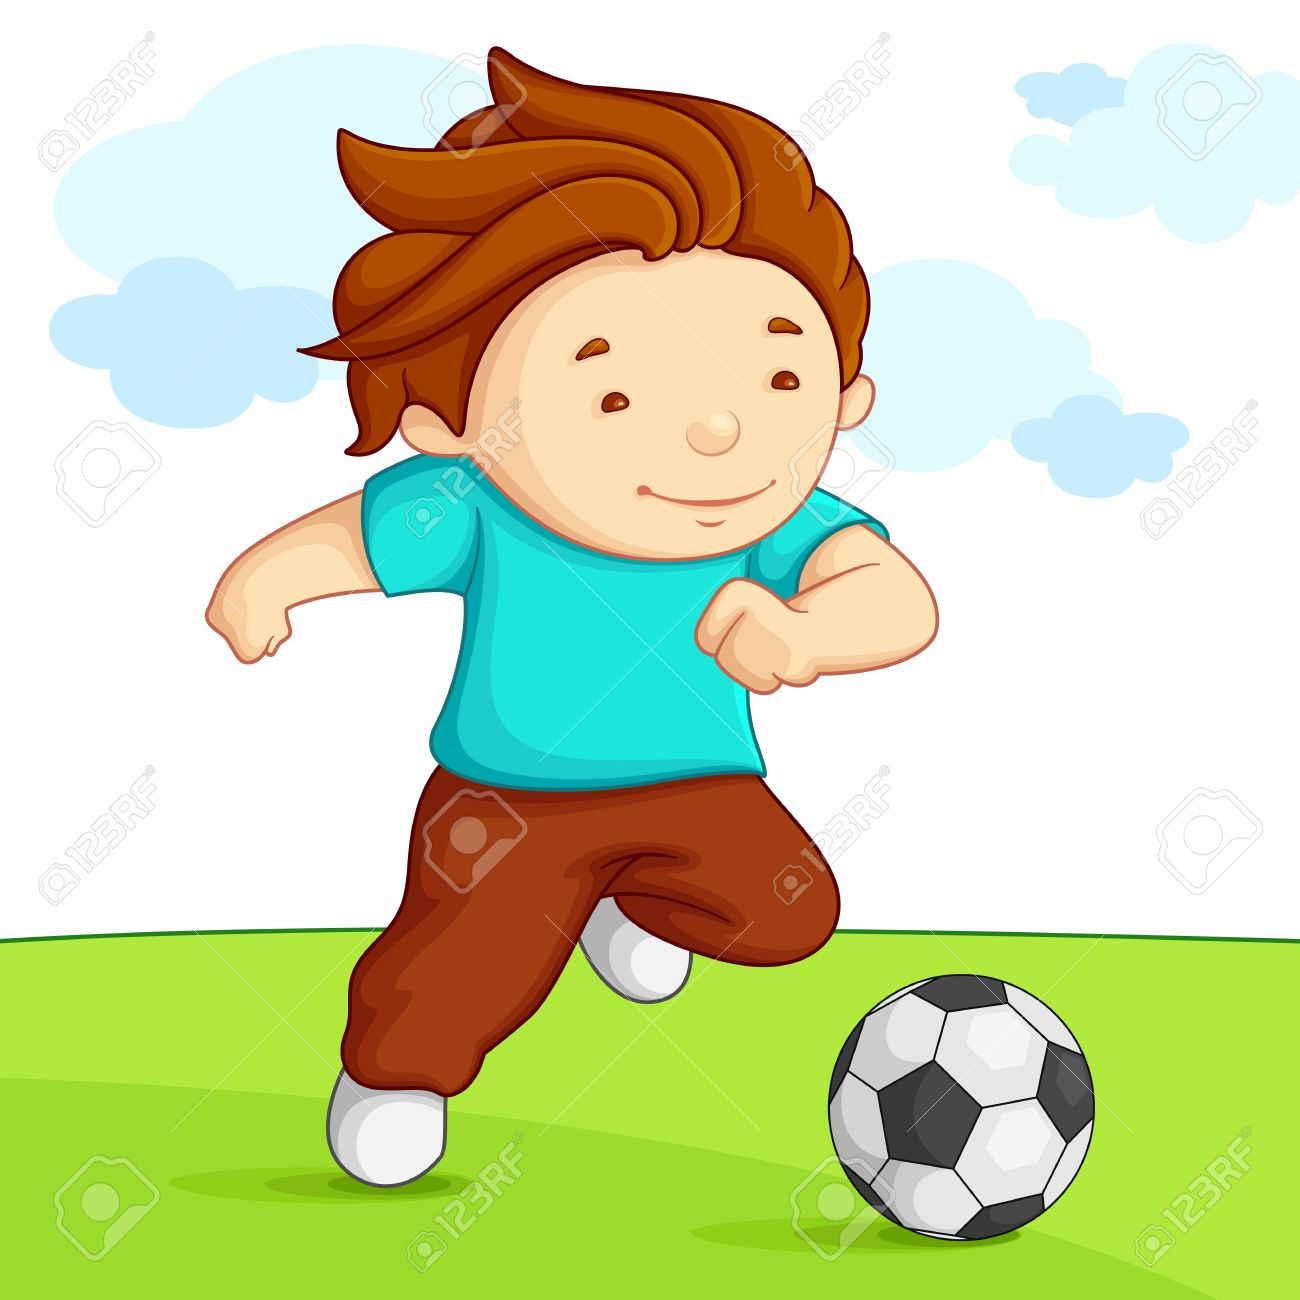 Playing-soccer